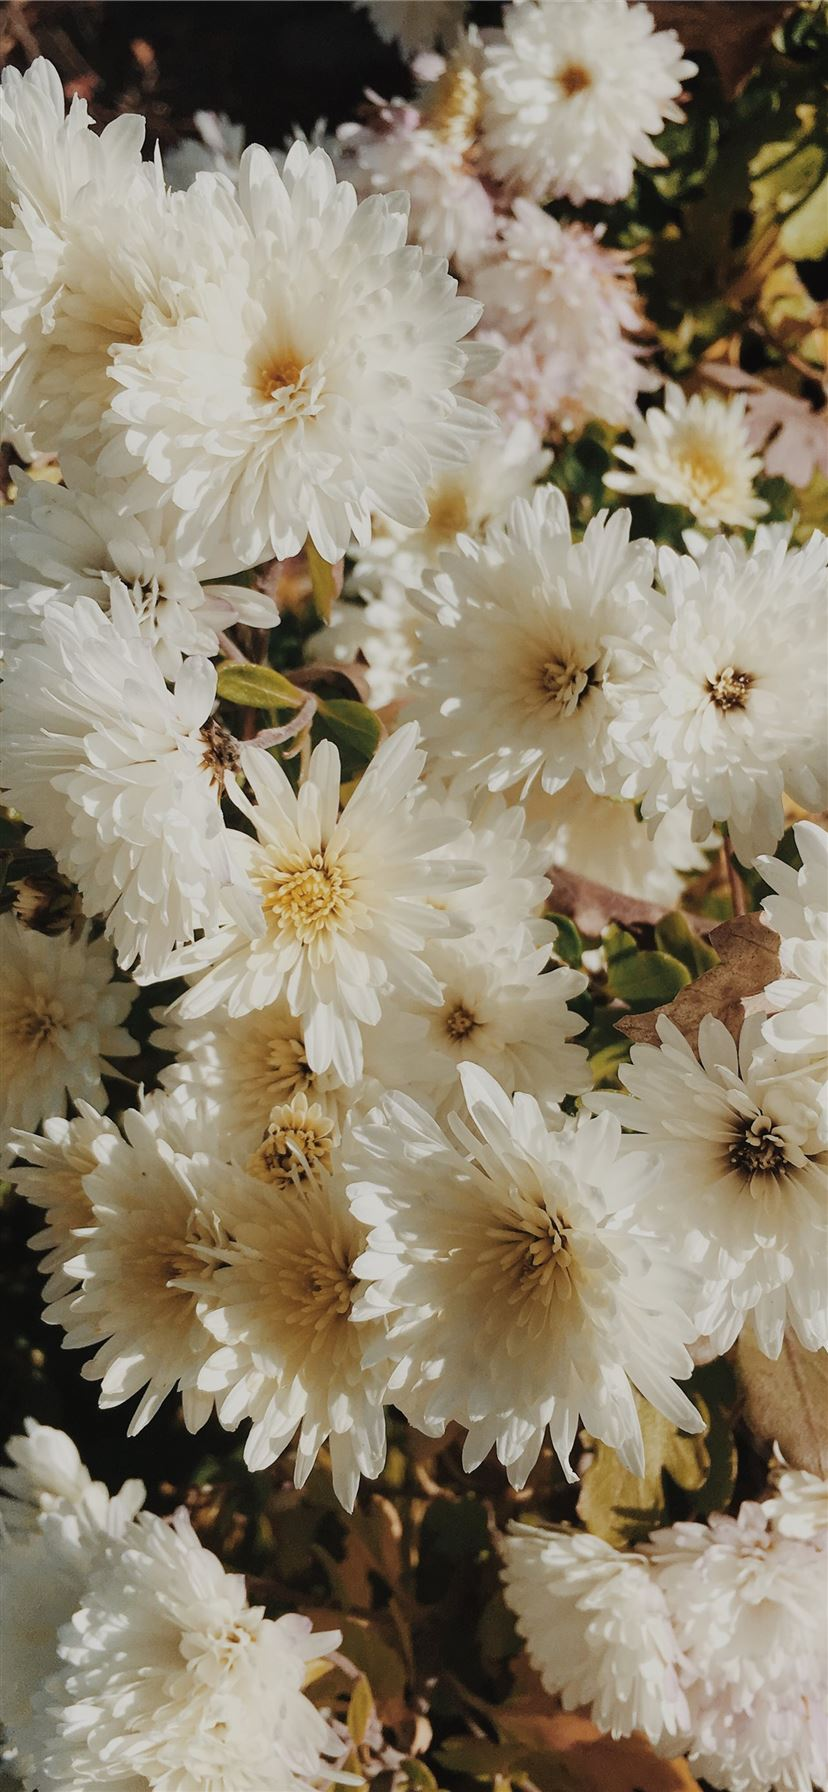 bouquet of white daisy flowers iPhone 11 wallpaper